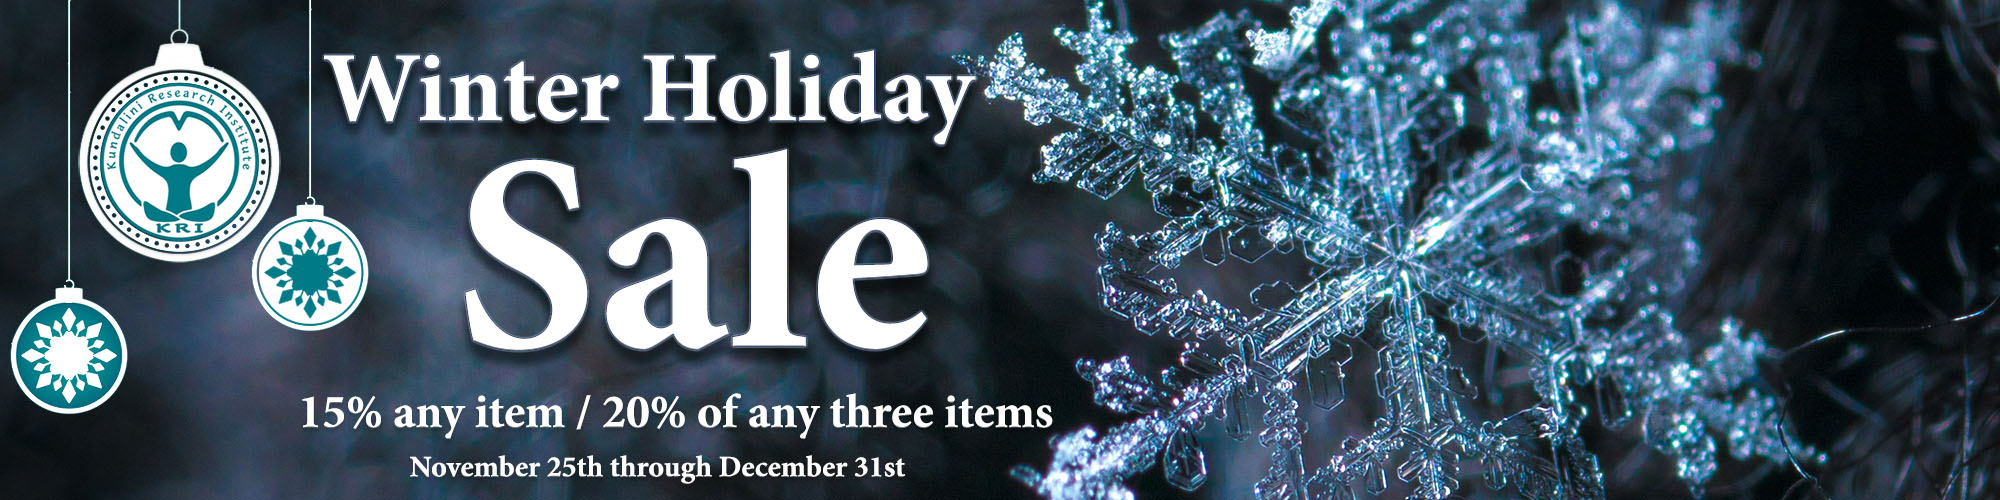 Winter Holiday Webstore Sale